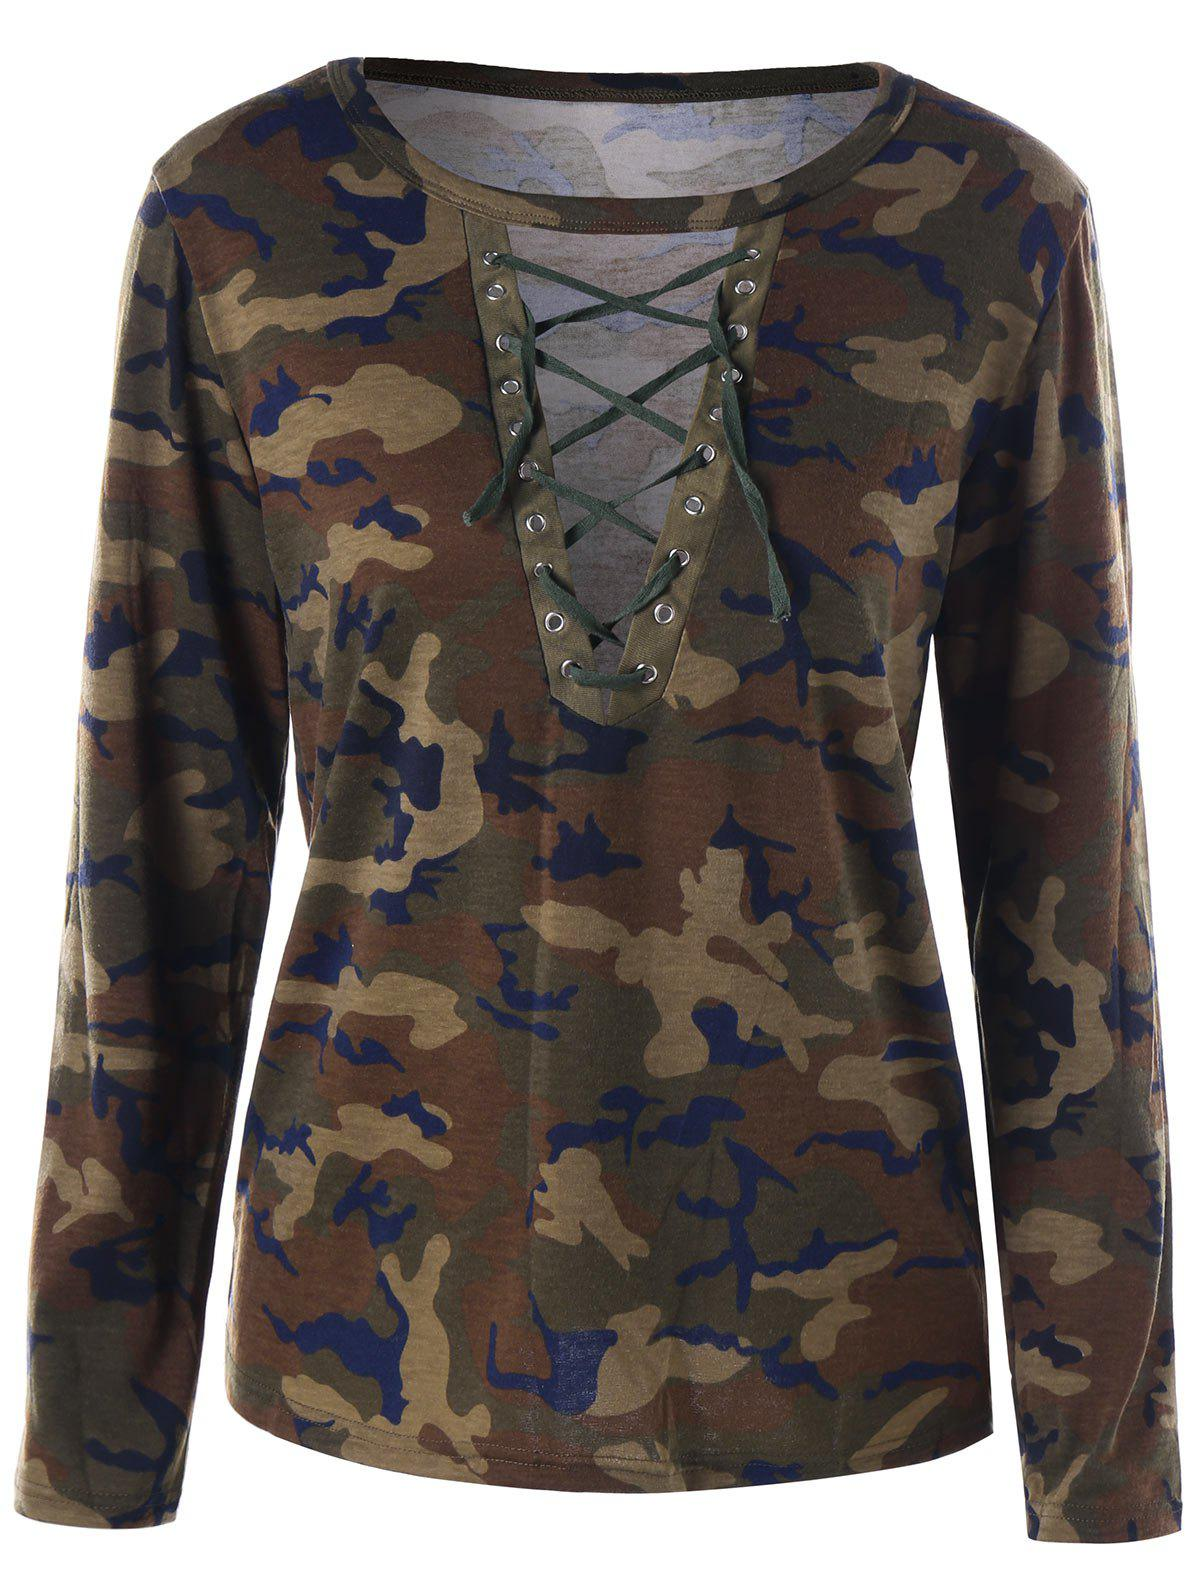 Camouflage Lace Up T-shirt camouflage lace up t shirt